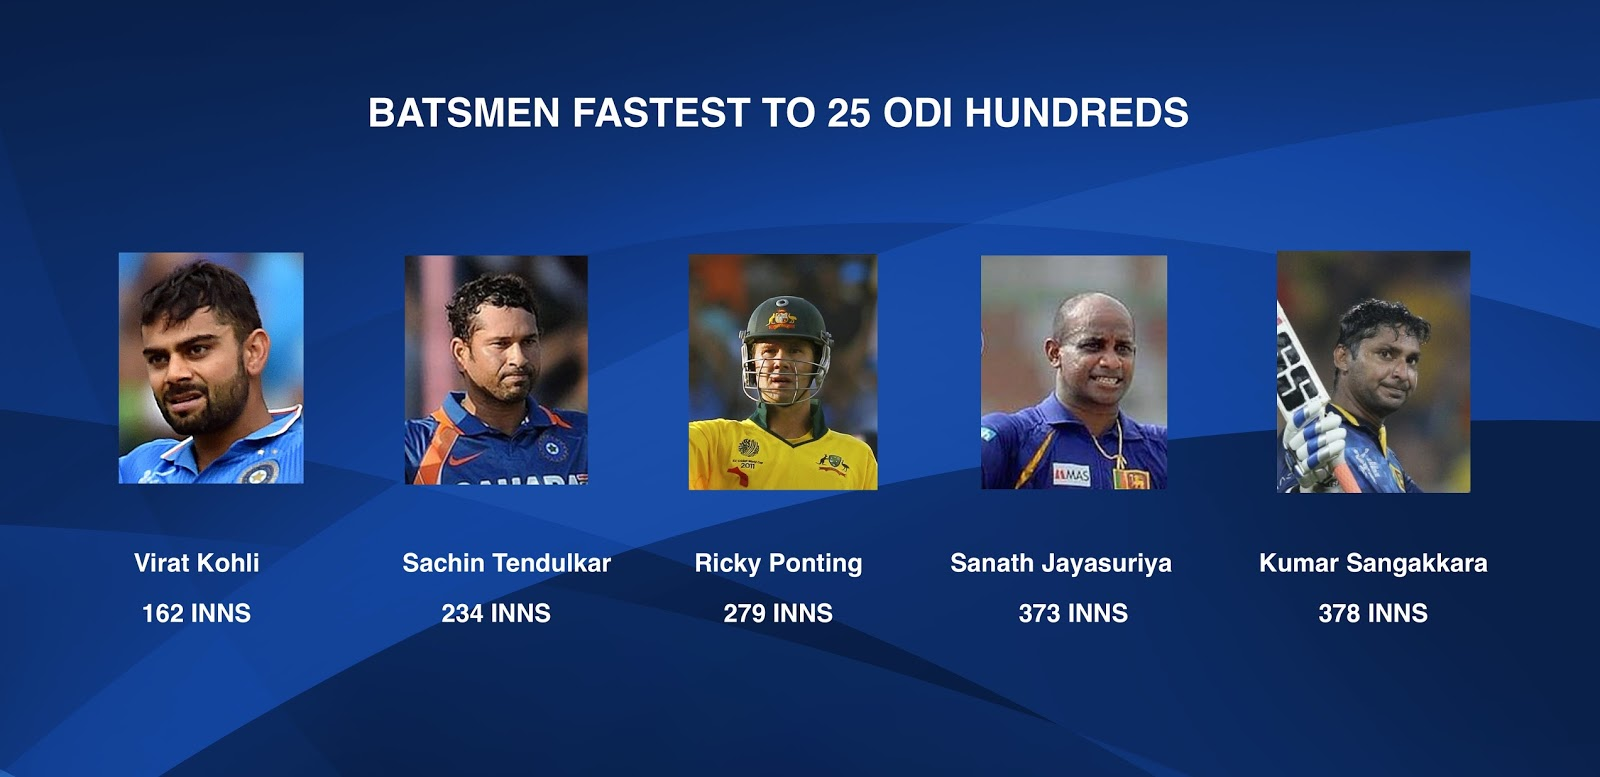 virat kohli fastest to 25 ODI Hundreds